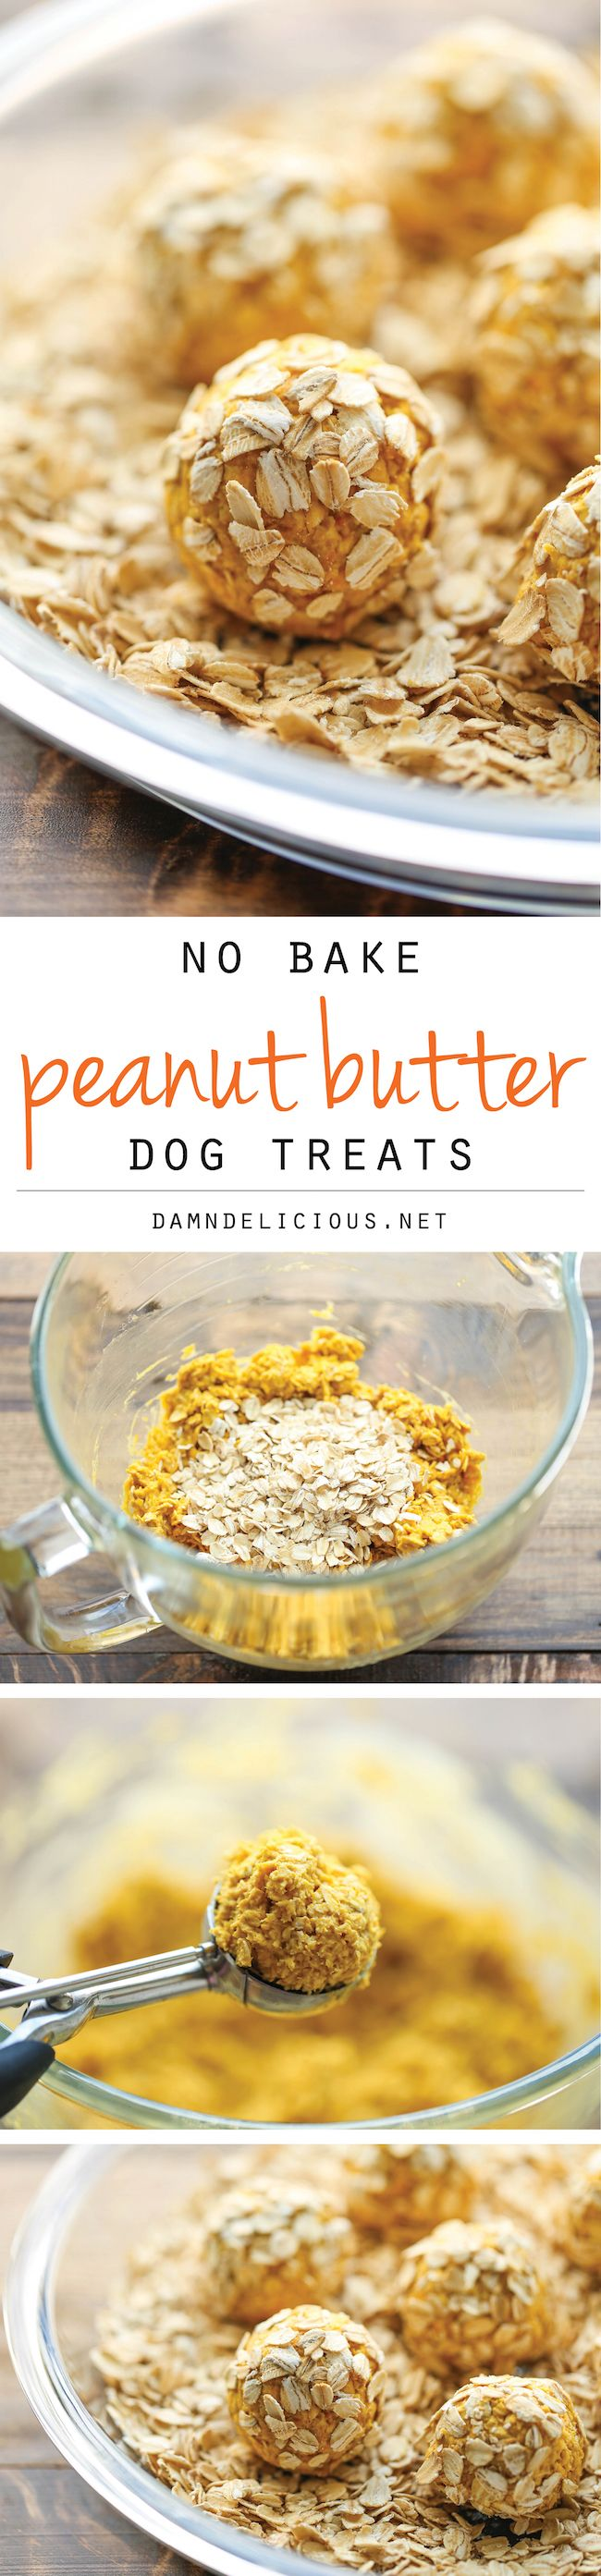 No Bake Peanut Butter Dog Treats – Easy peasy 4-ingredient treats that are sure to be your pup's favorite. And you can whip these